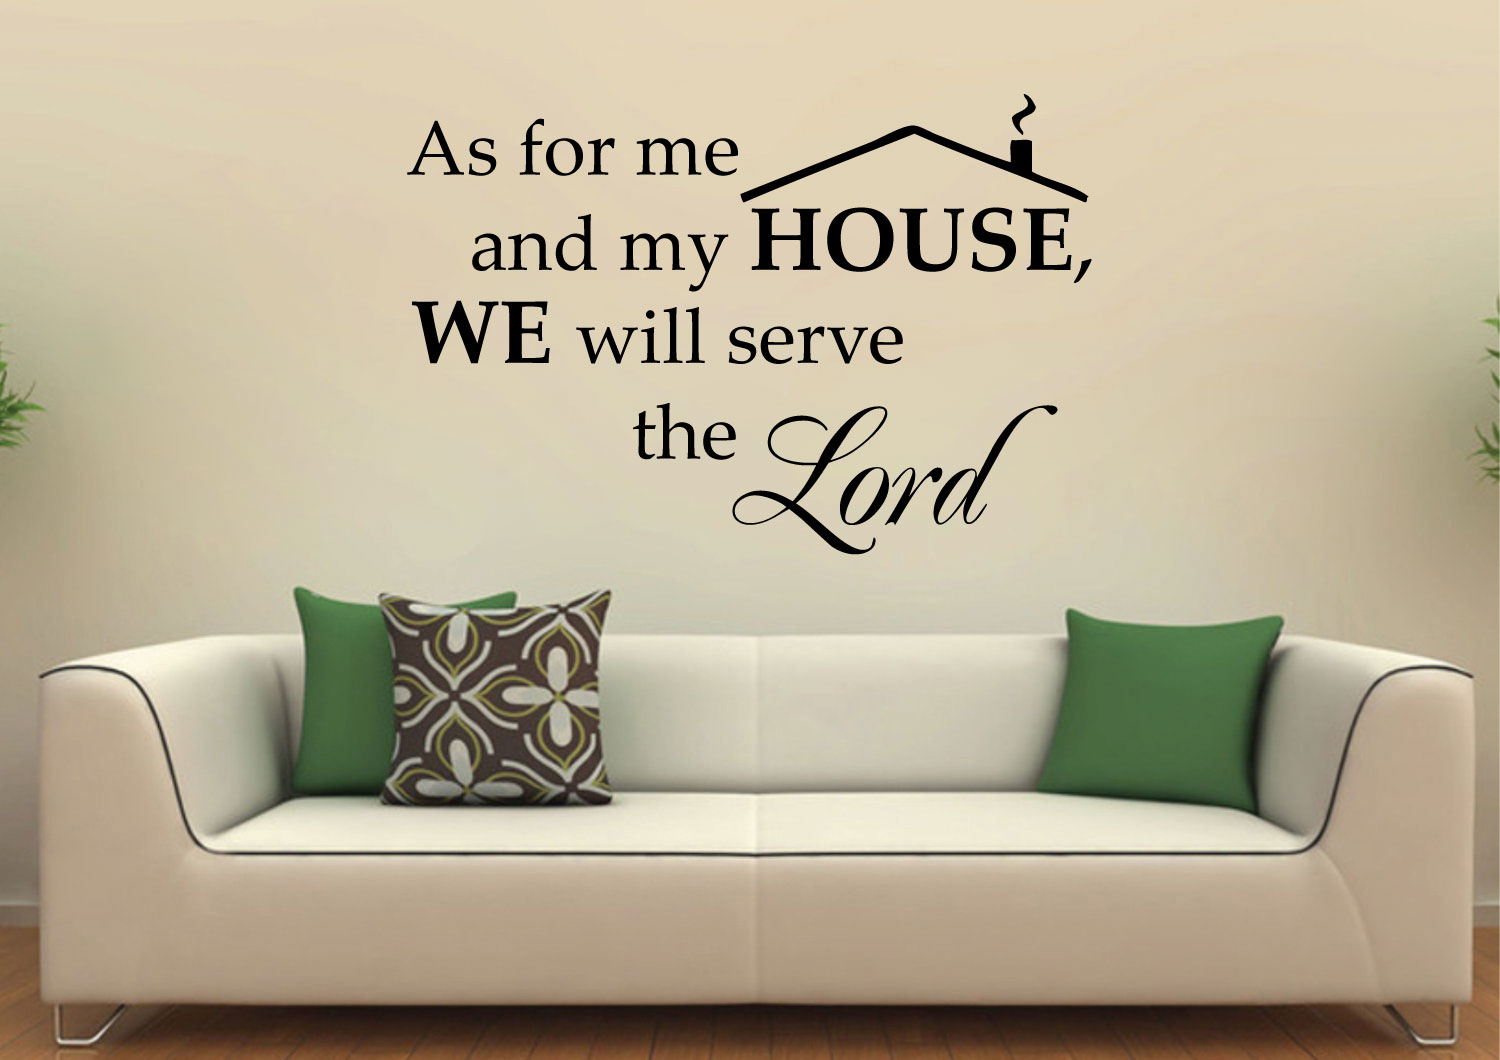 We Will Serve the Lord Vinyl Wall Art Inspirational Quotes and Saying Home decor Decal Sticker Ste Decalgeek DG-AS-1 As for Me and My House